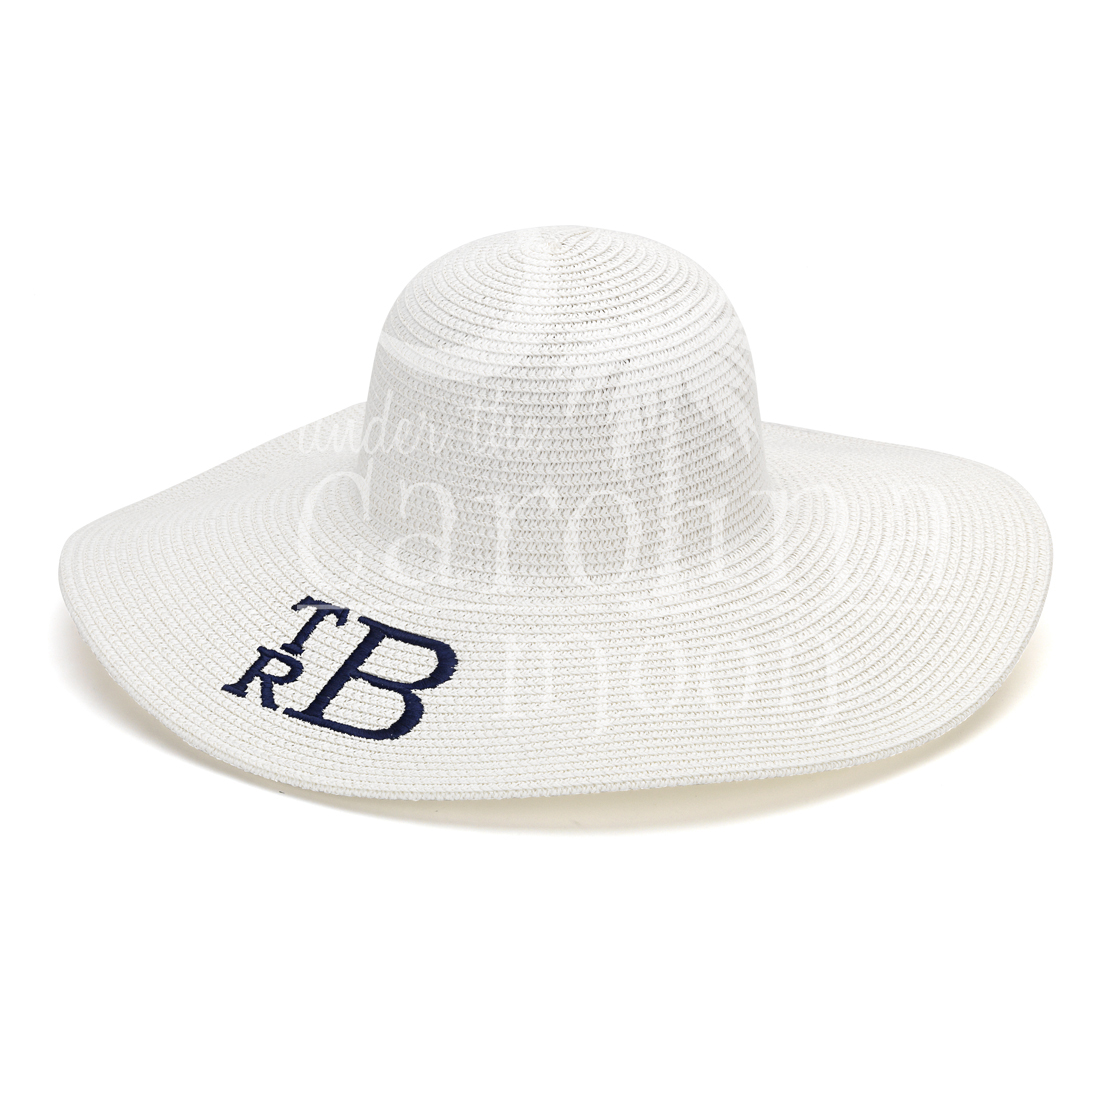 Preppy Sun Hat White